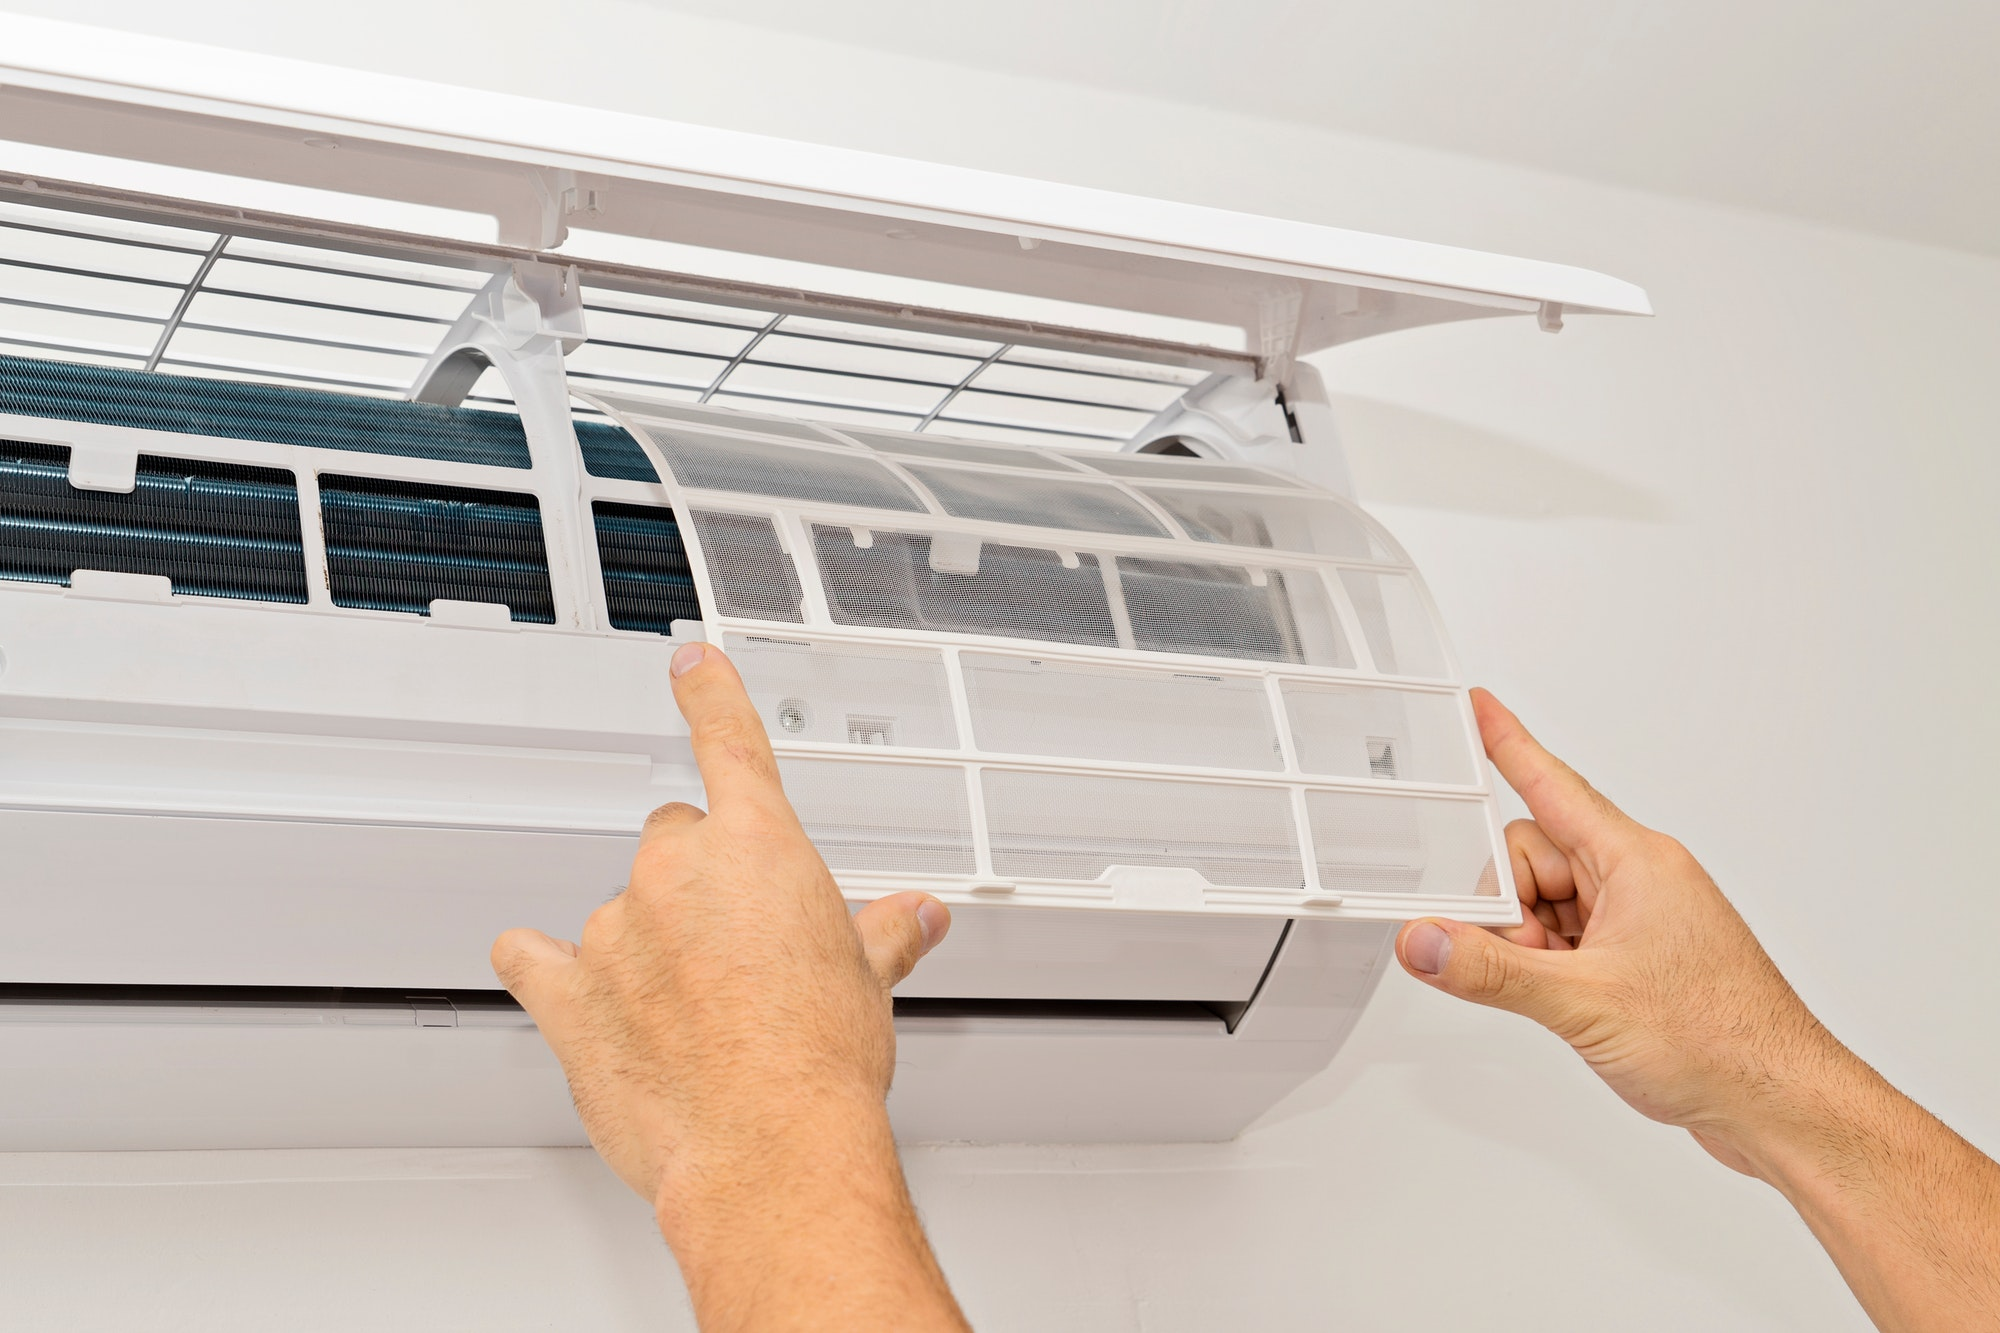 Changing the filter of the air conditioner